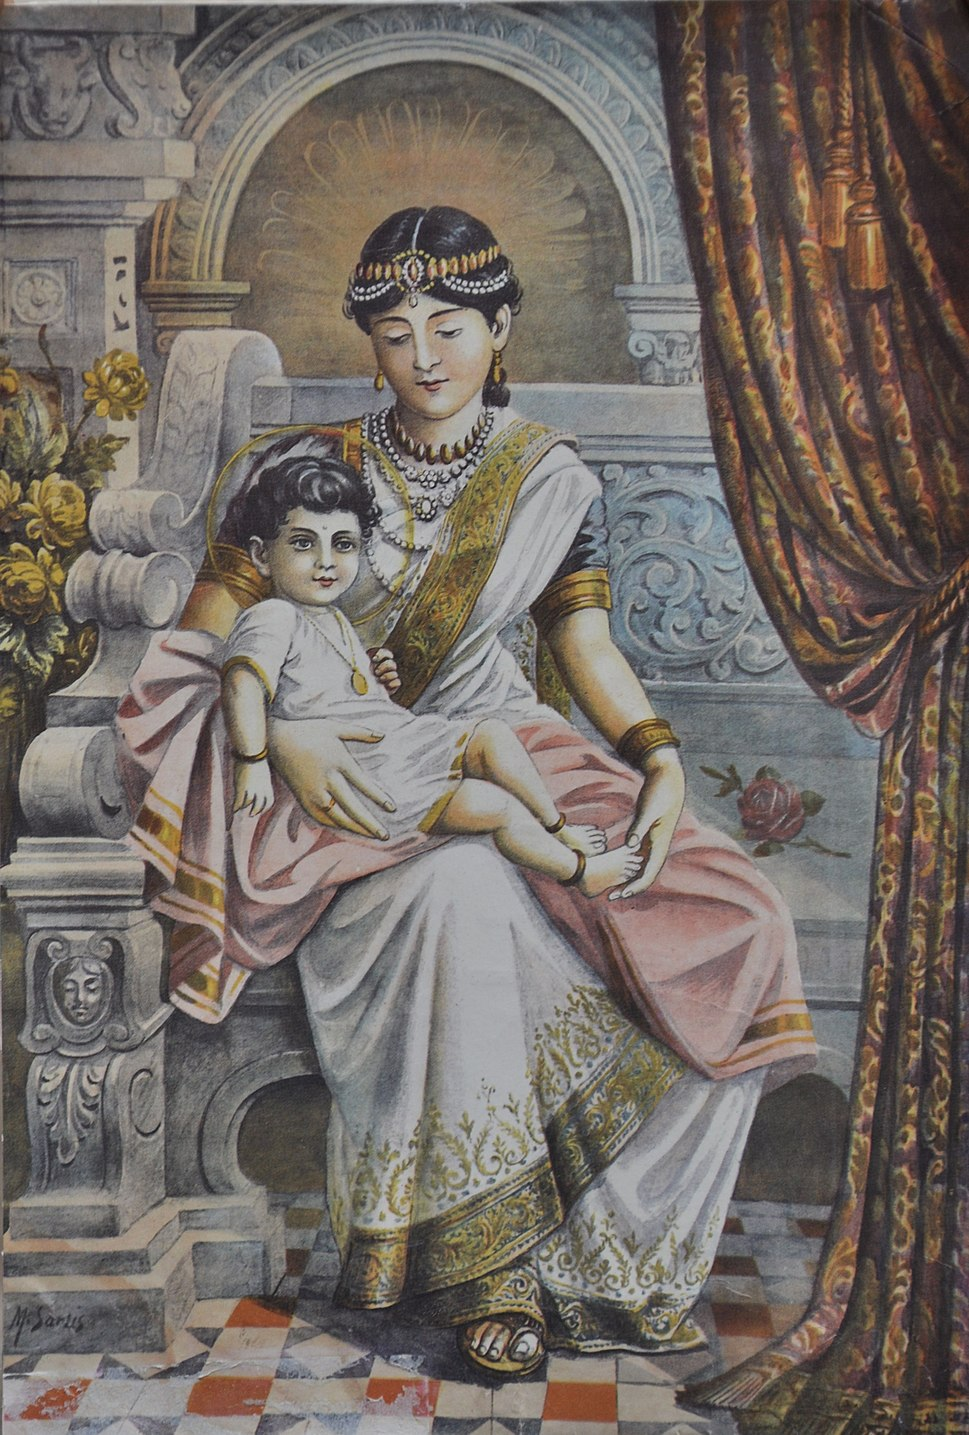 Prince Siddhartha with his maternal aunt Queen Mahaprajapati Gotami